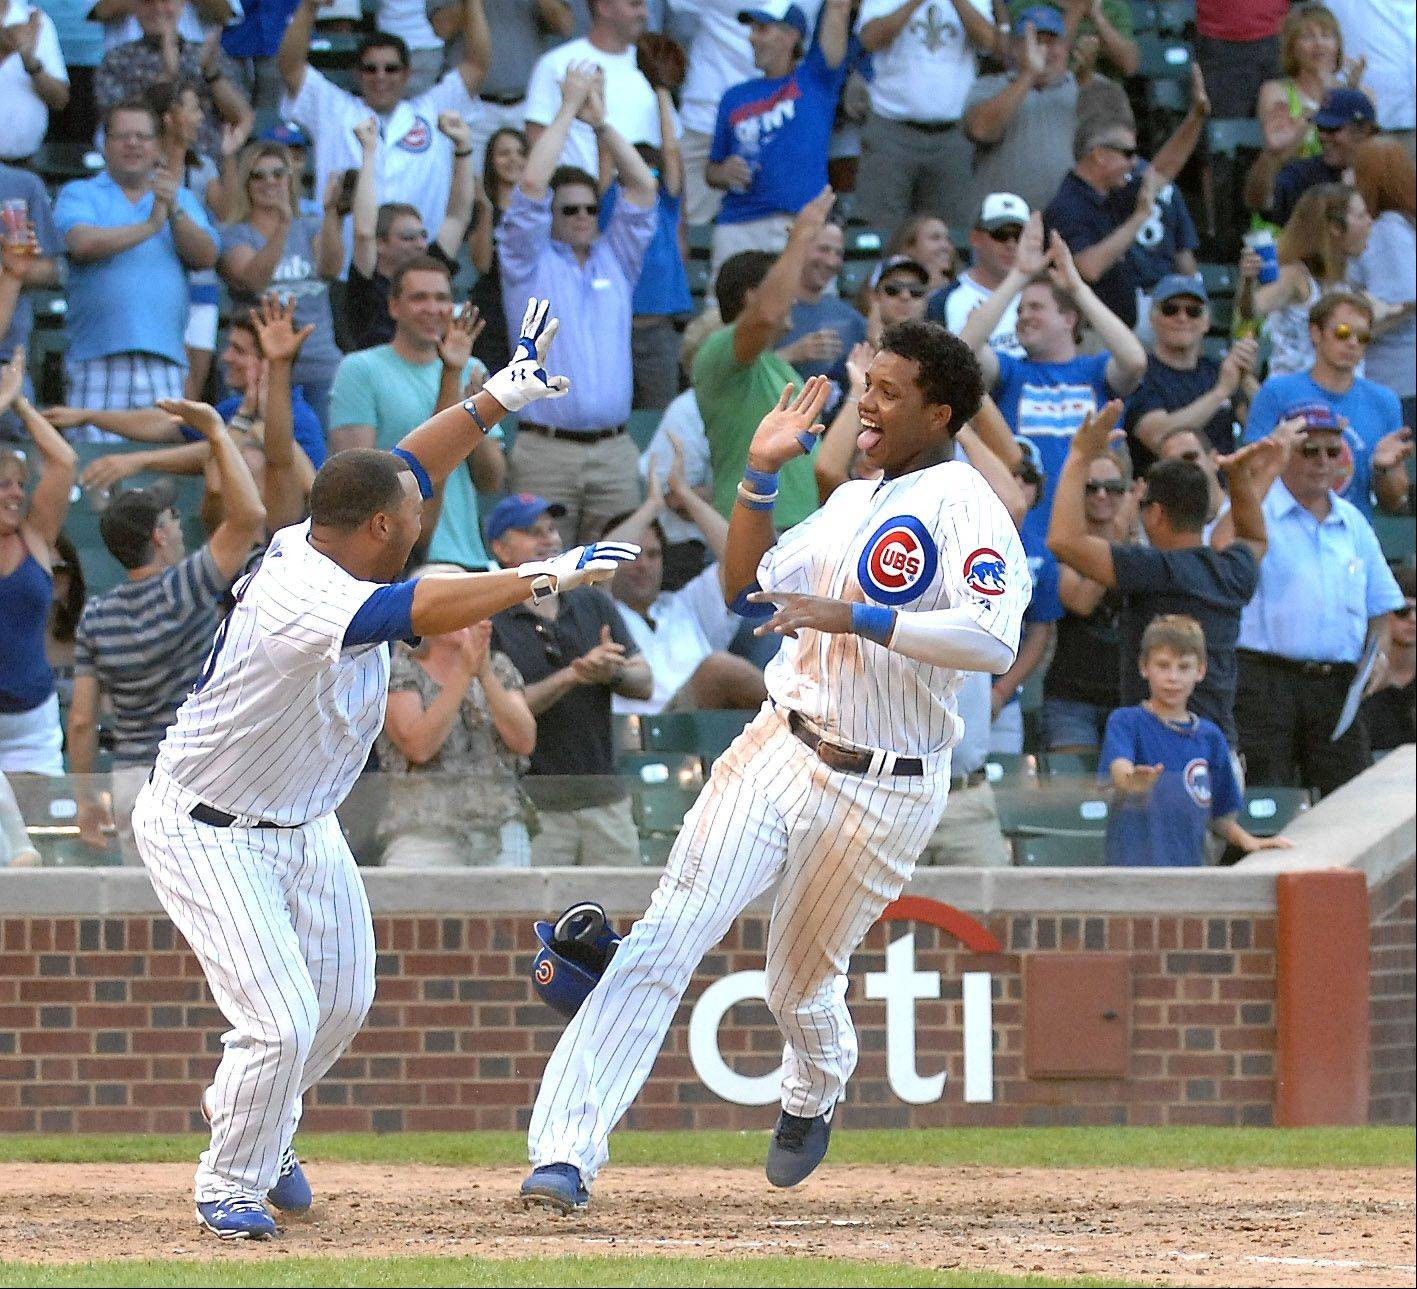 Starlin Castro crosses the plate with the winning run on a hit by Alfonso Soriano to beat Milwaukee 12-11 Thursday at Wrigley Field. At left is Welington Castillo.